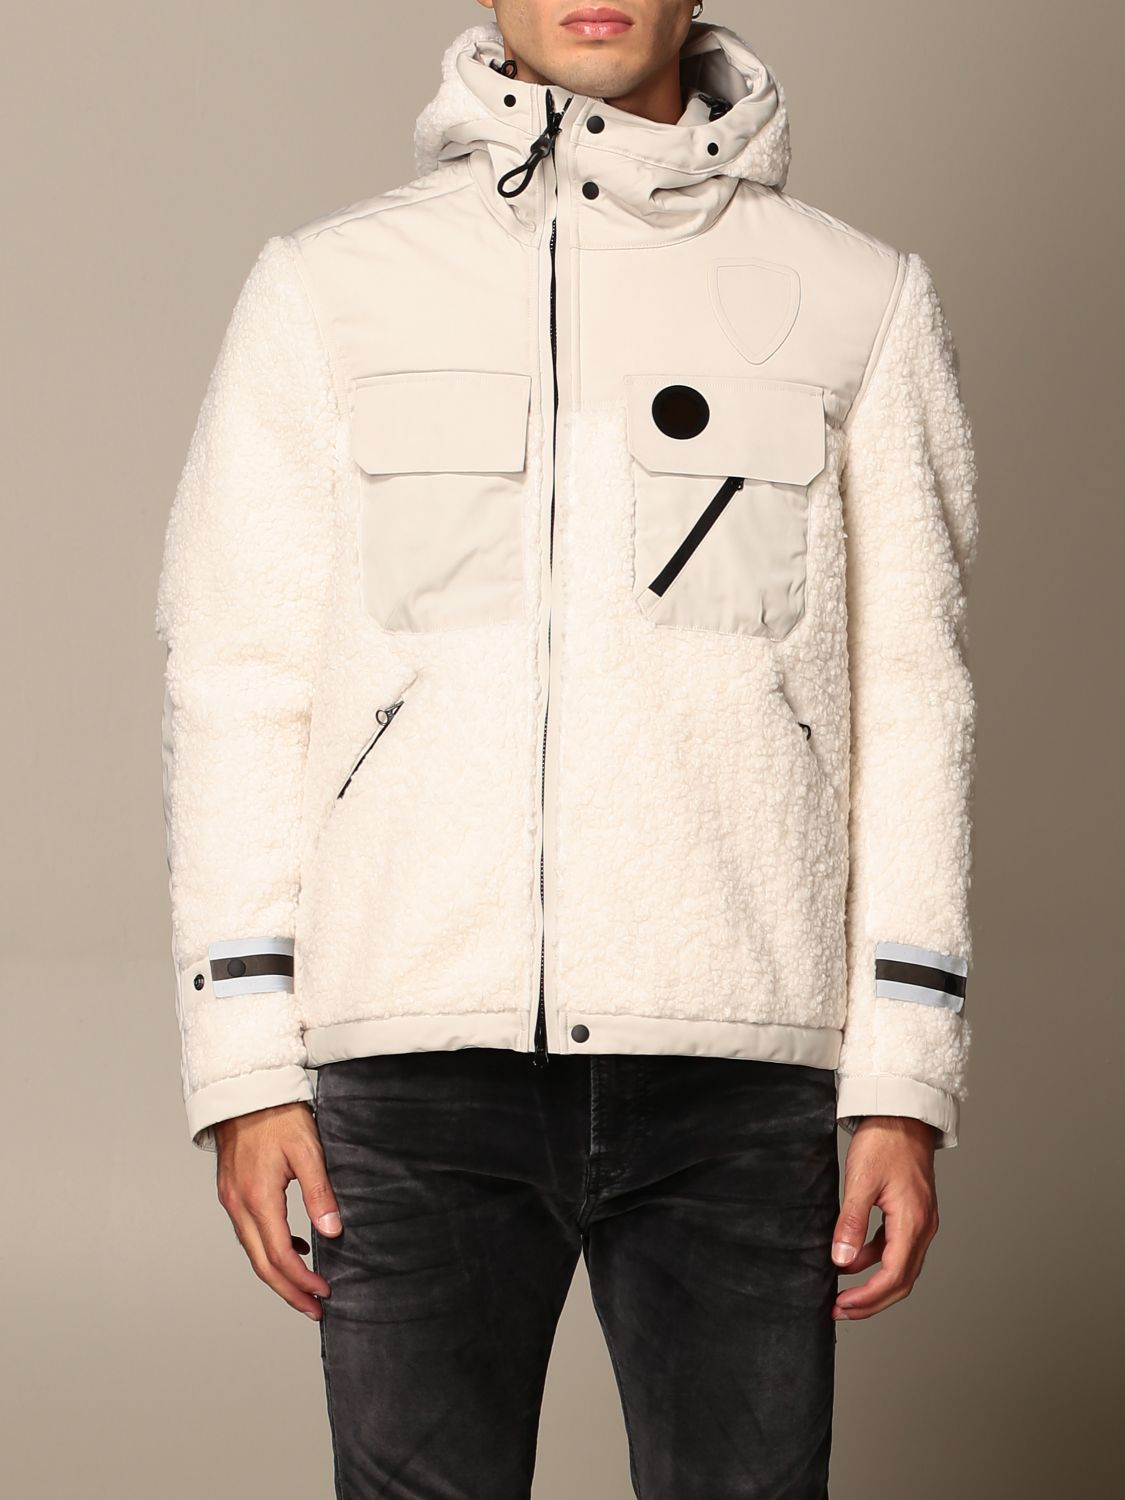 Jacket B.+Plus: Jacket men B.+plus white 1